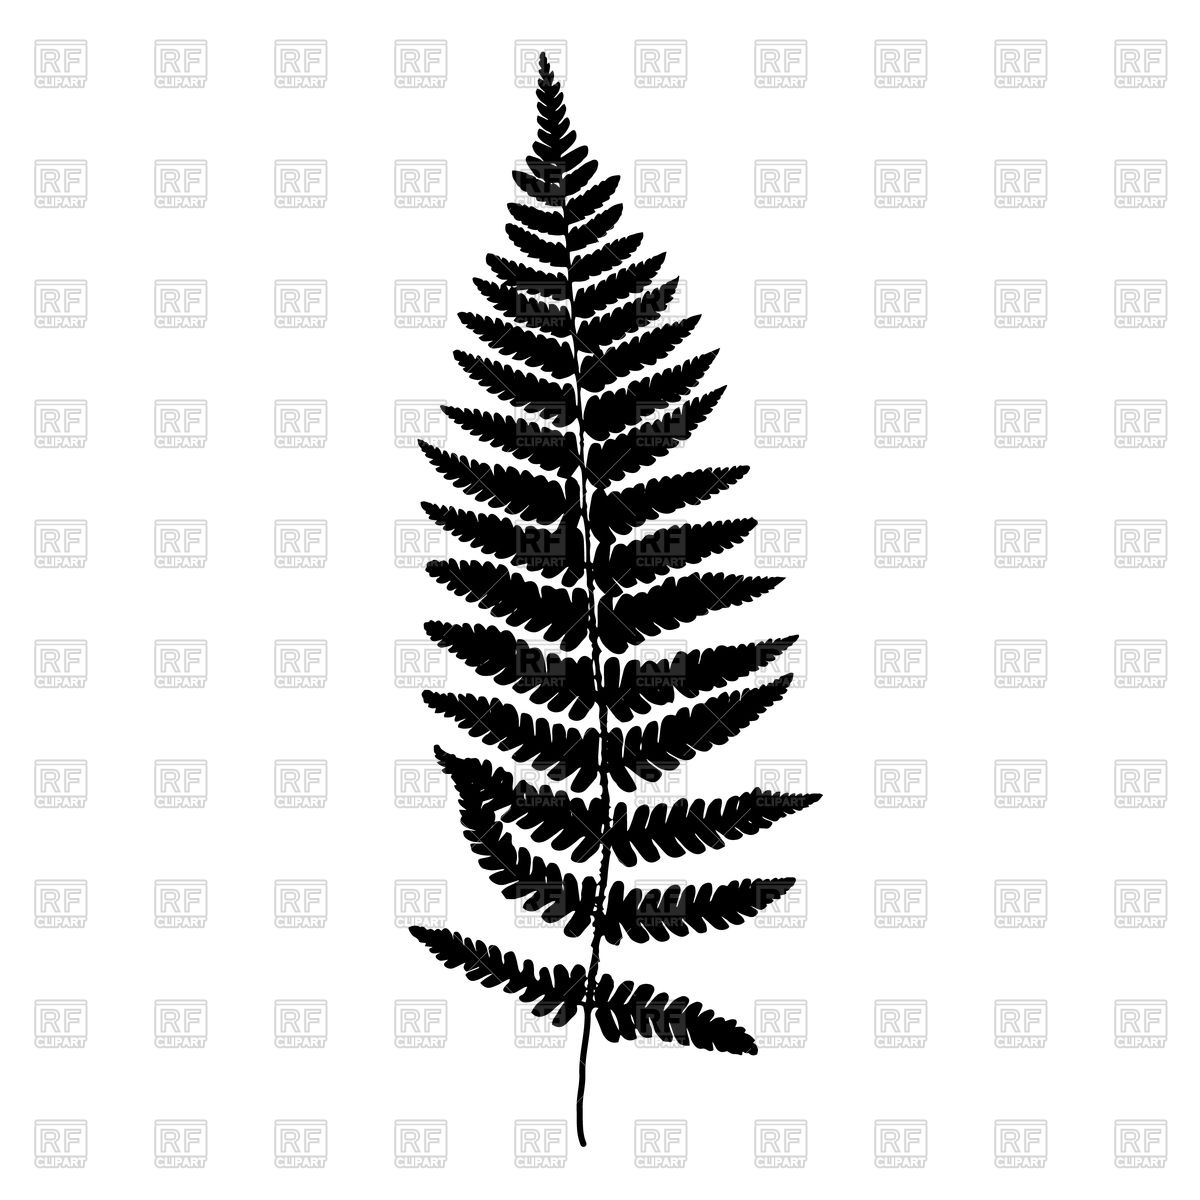 hight resolution of 1200x1200 fern leaf royalty free vector clip art image